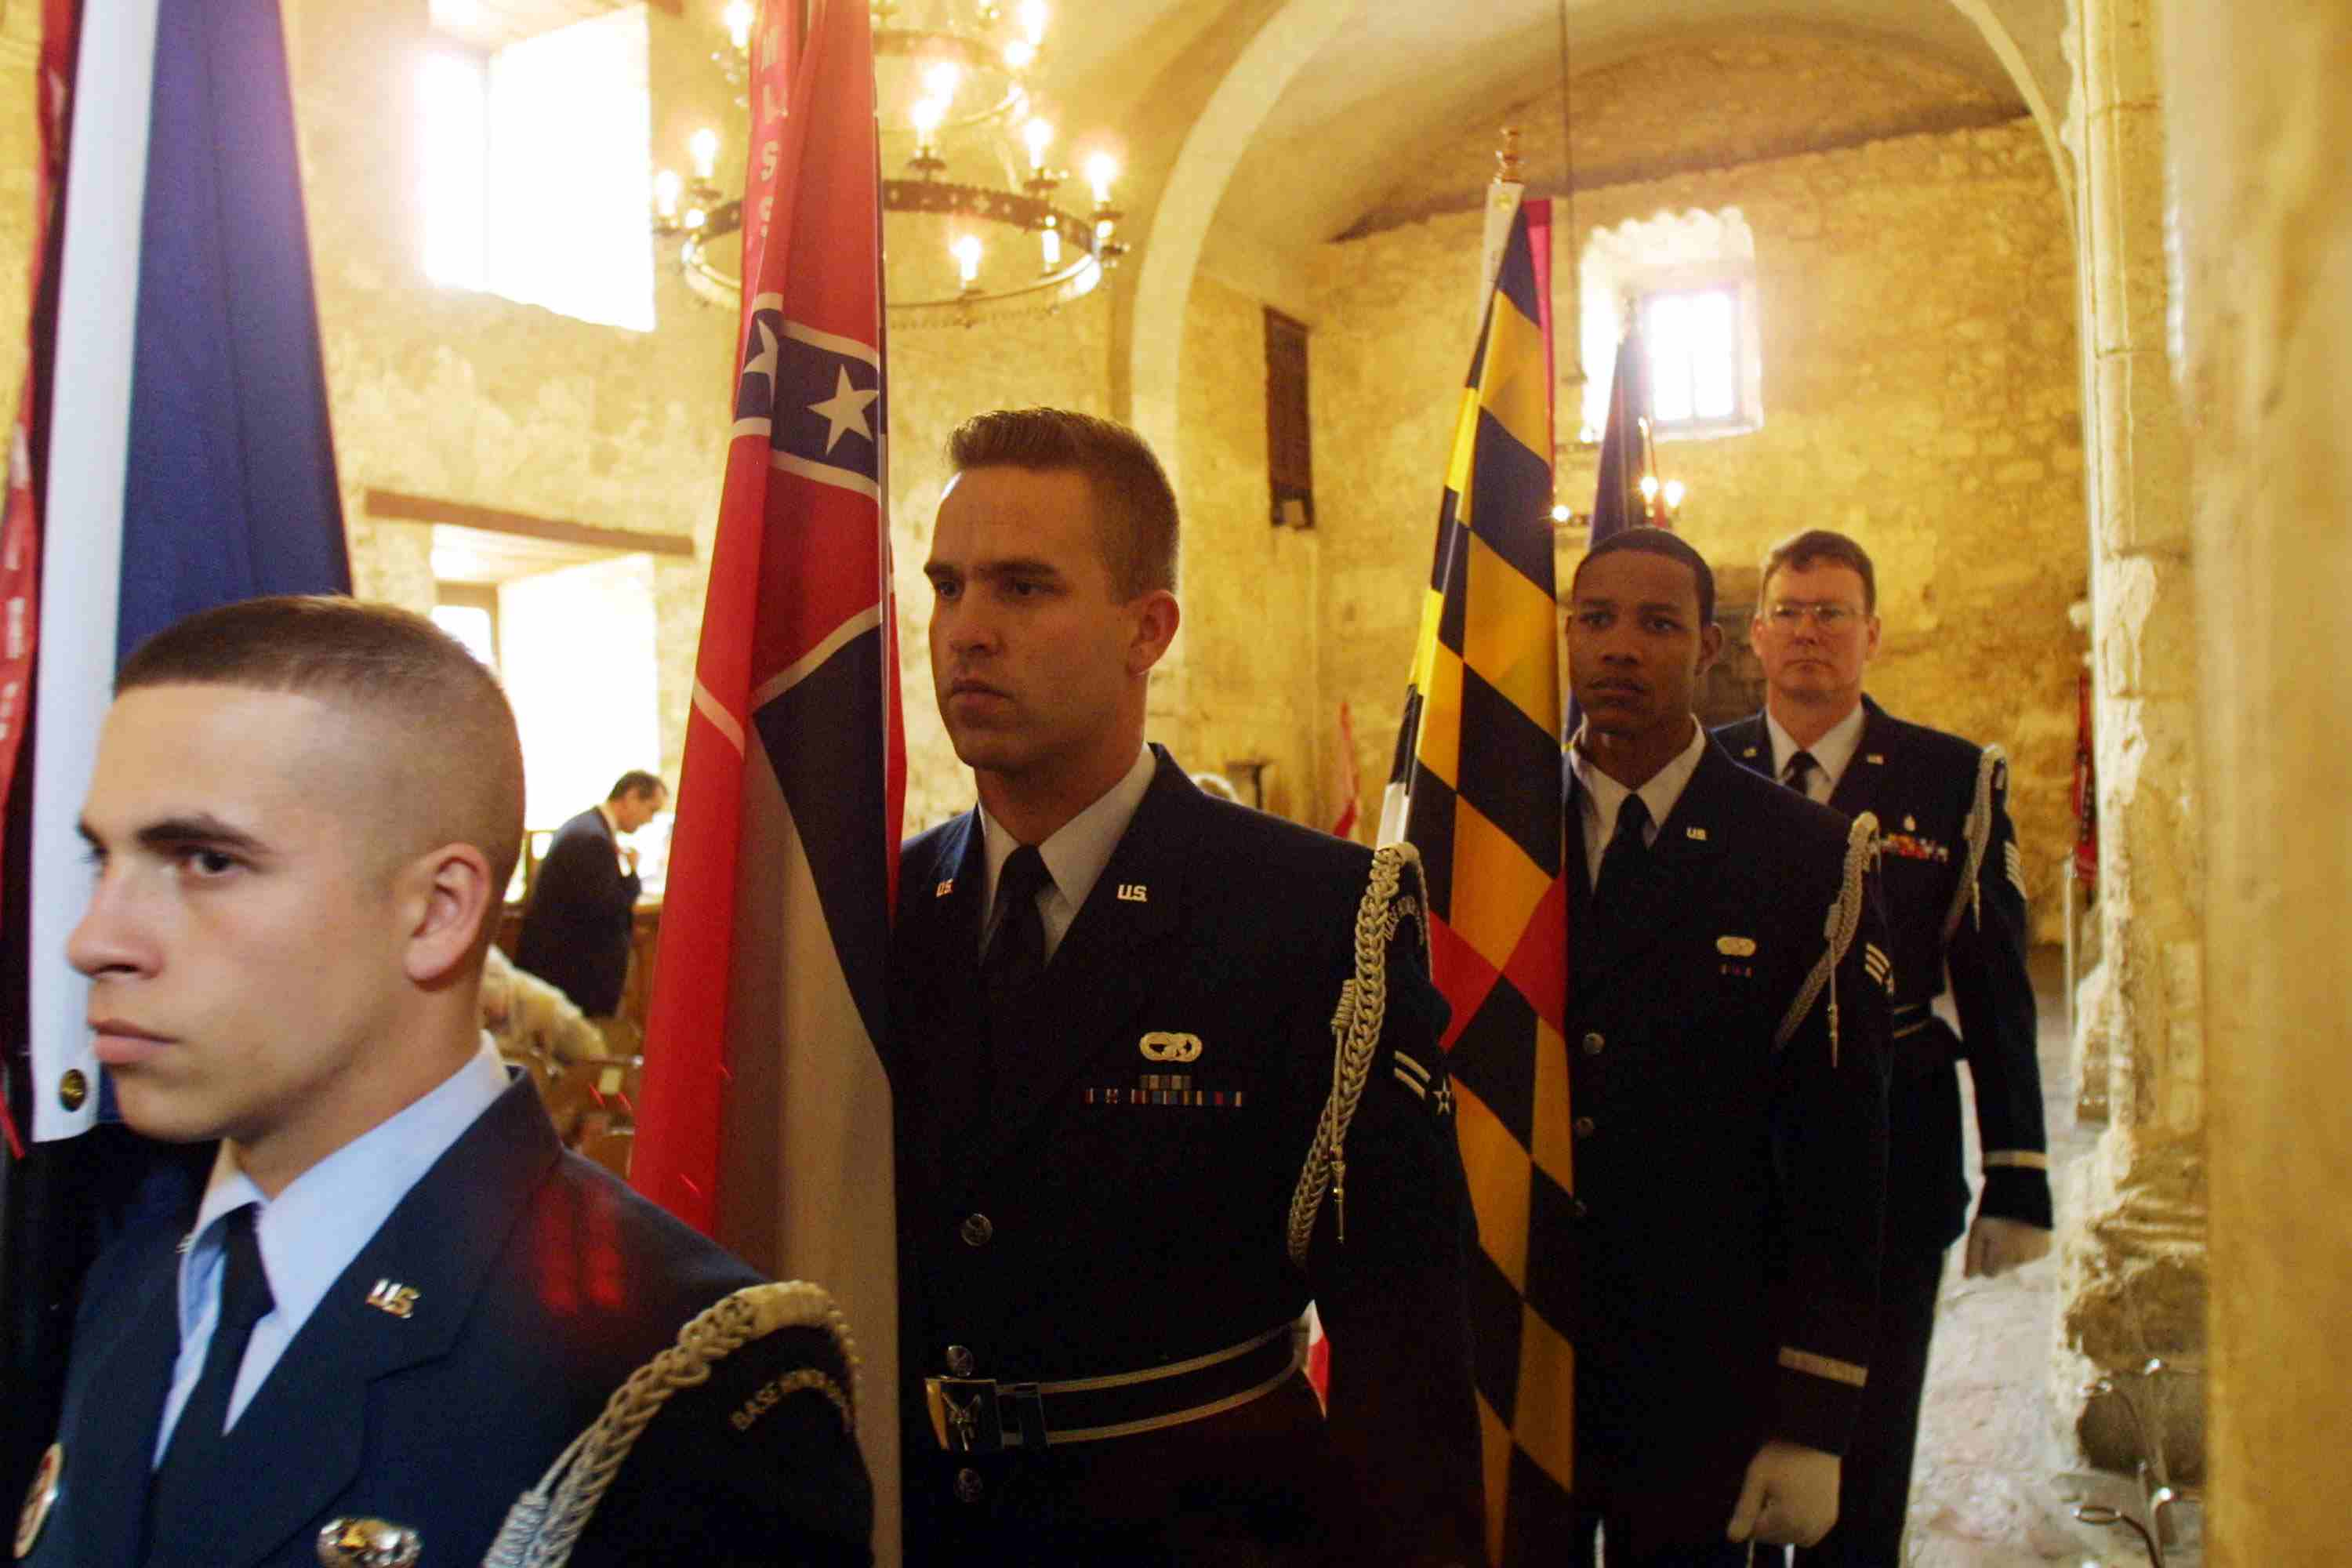 Four men in military processional